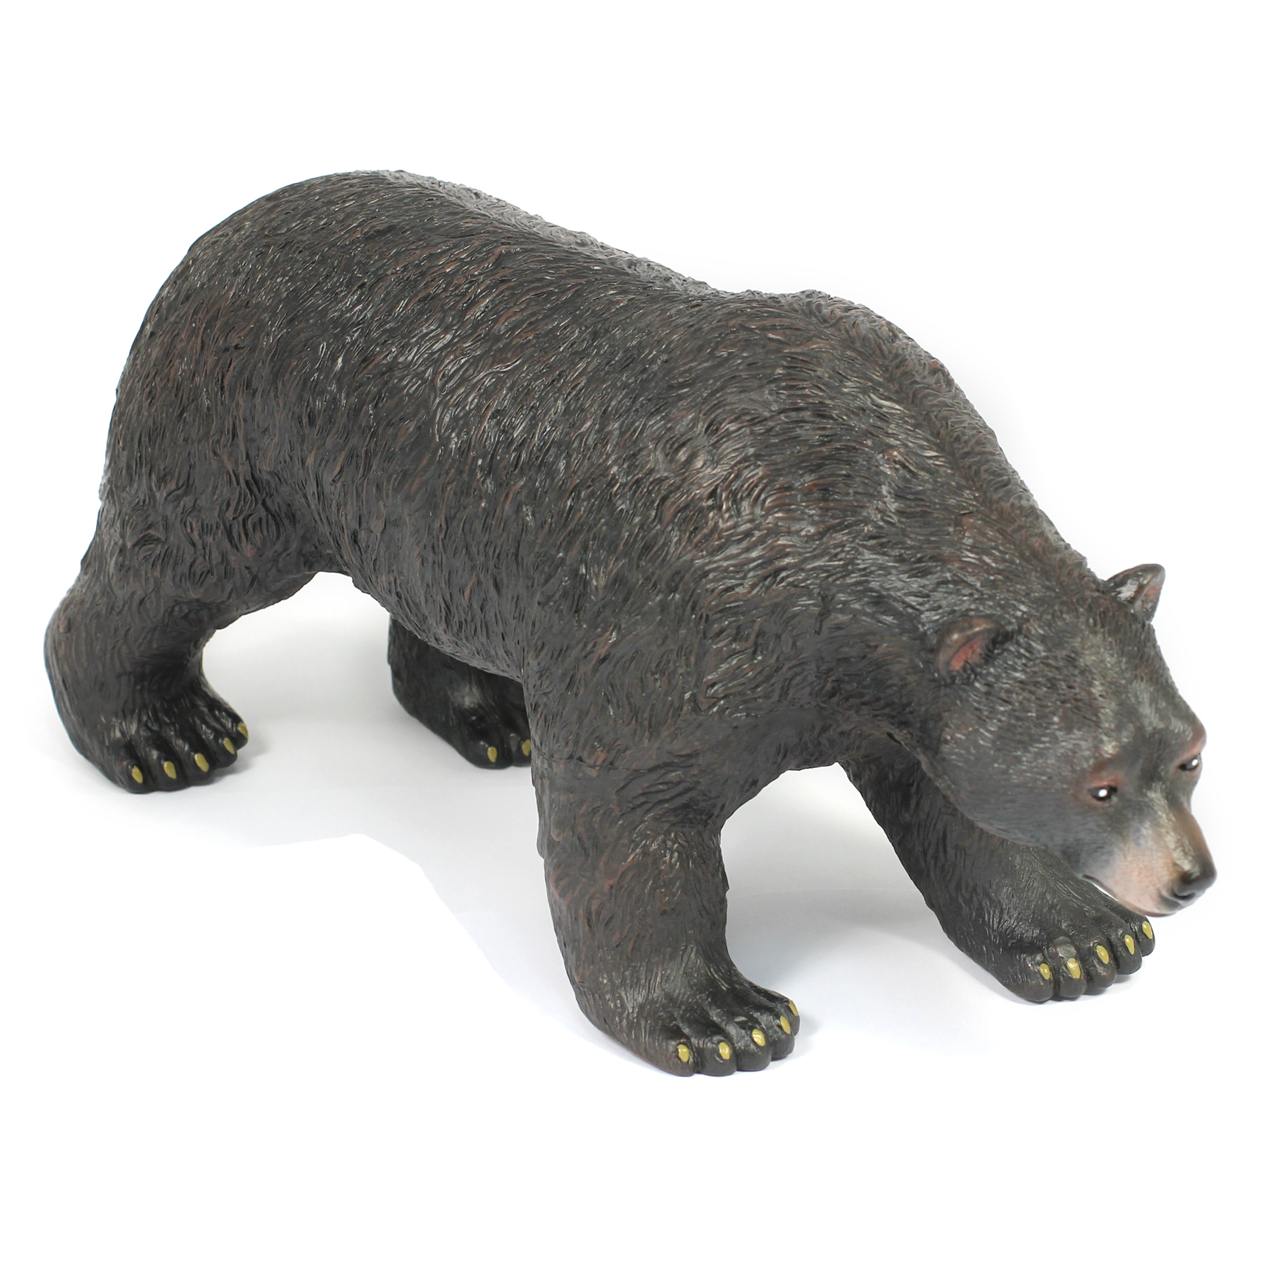 Resources such as our jumbo bears will allow children to learn not just about wild animals but their place in the food chain and how they impact the habitat they live in.